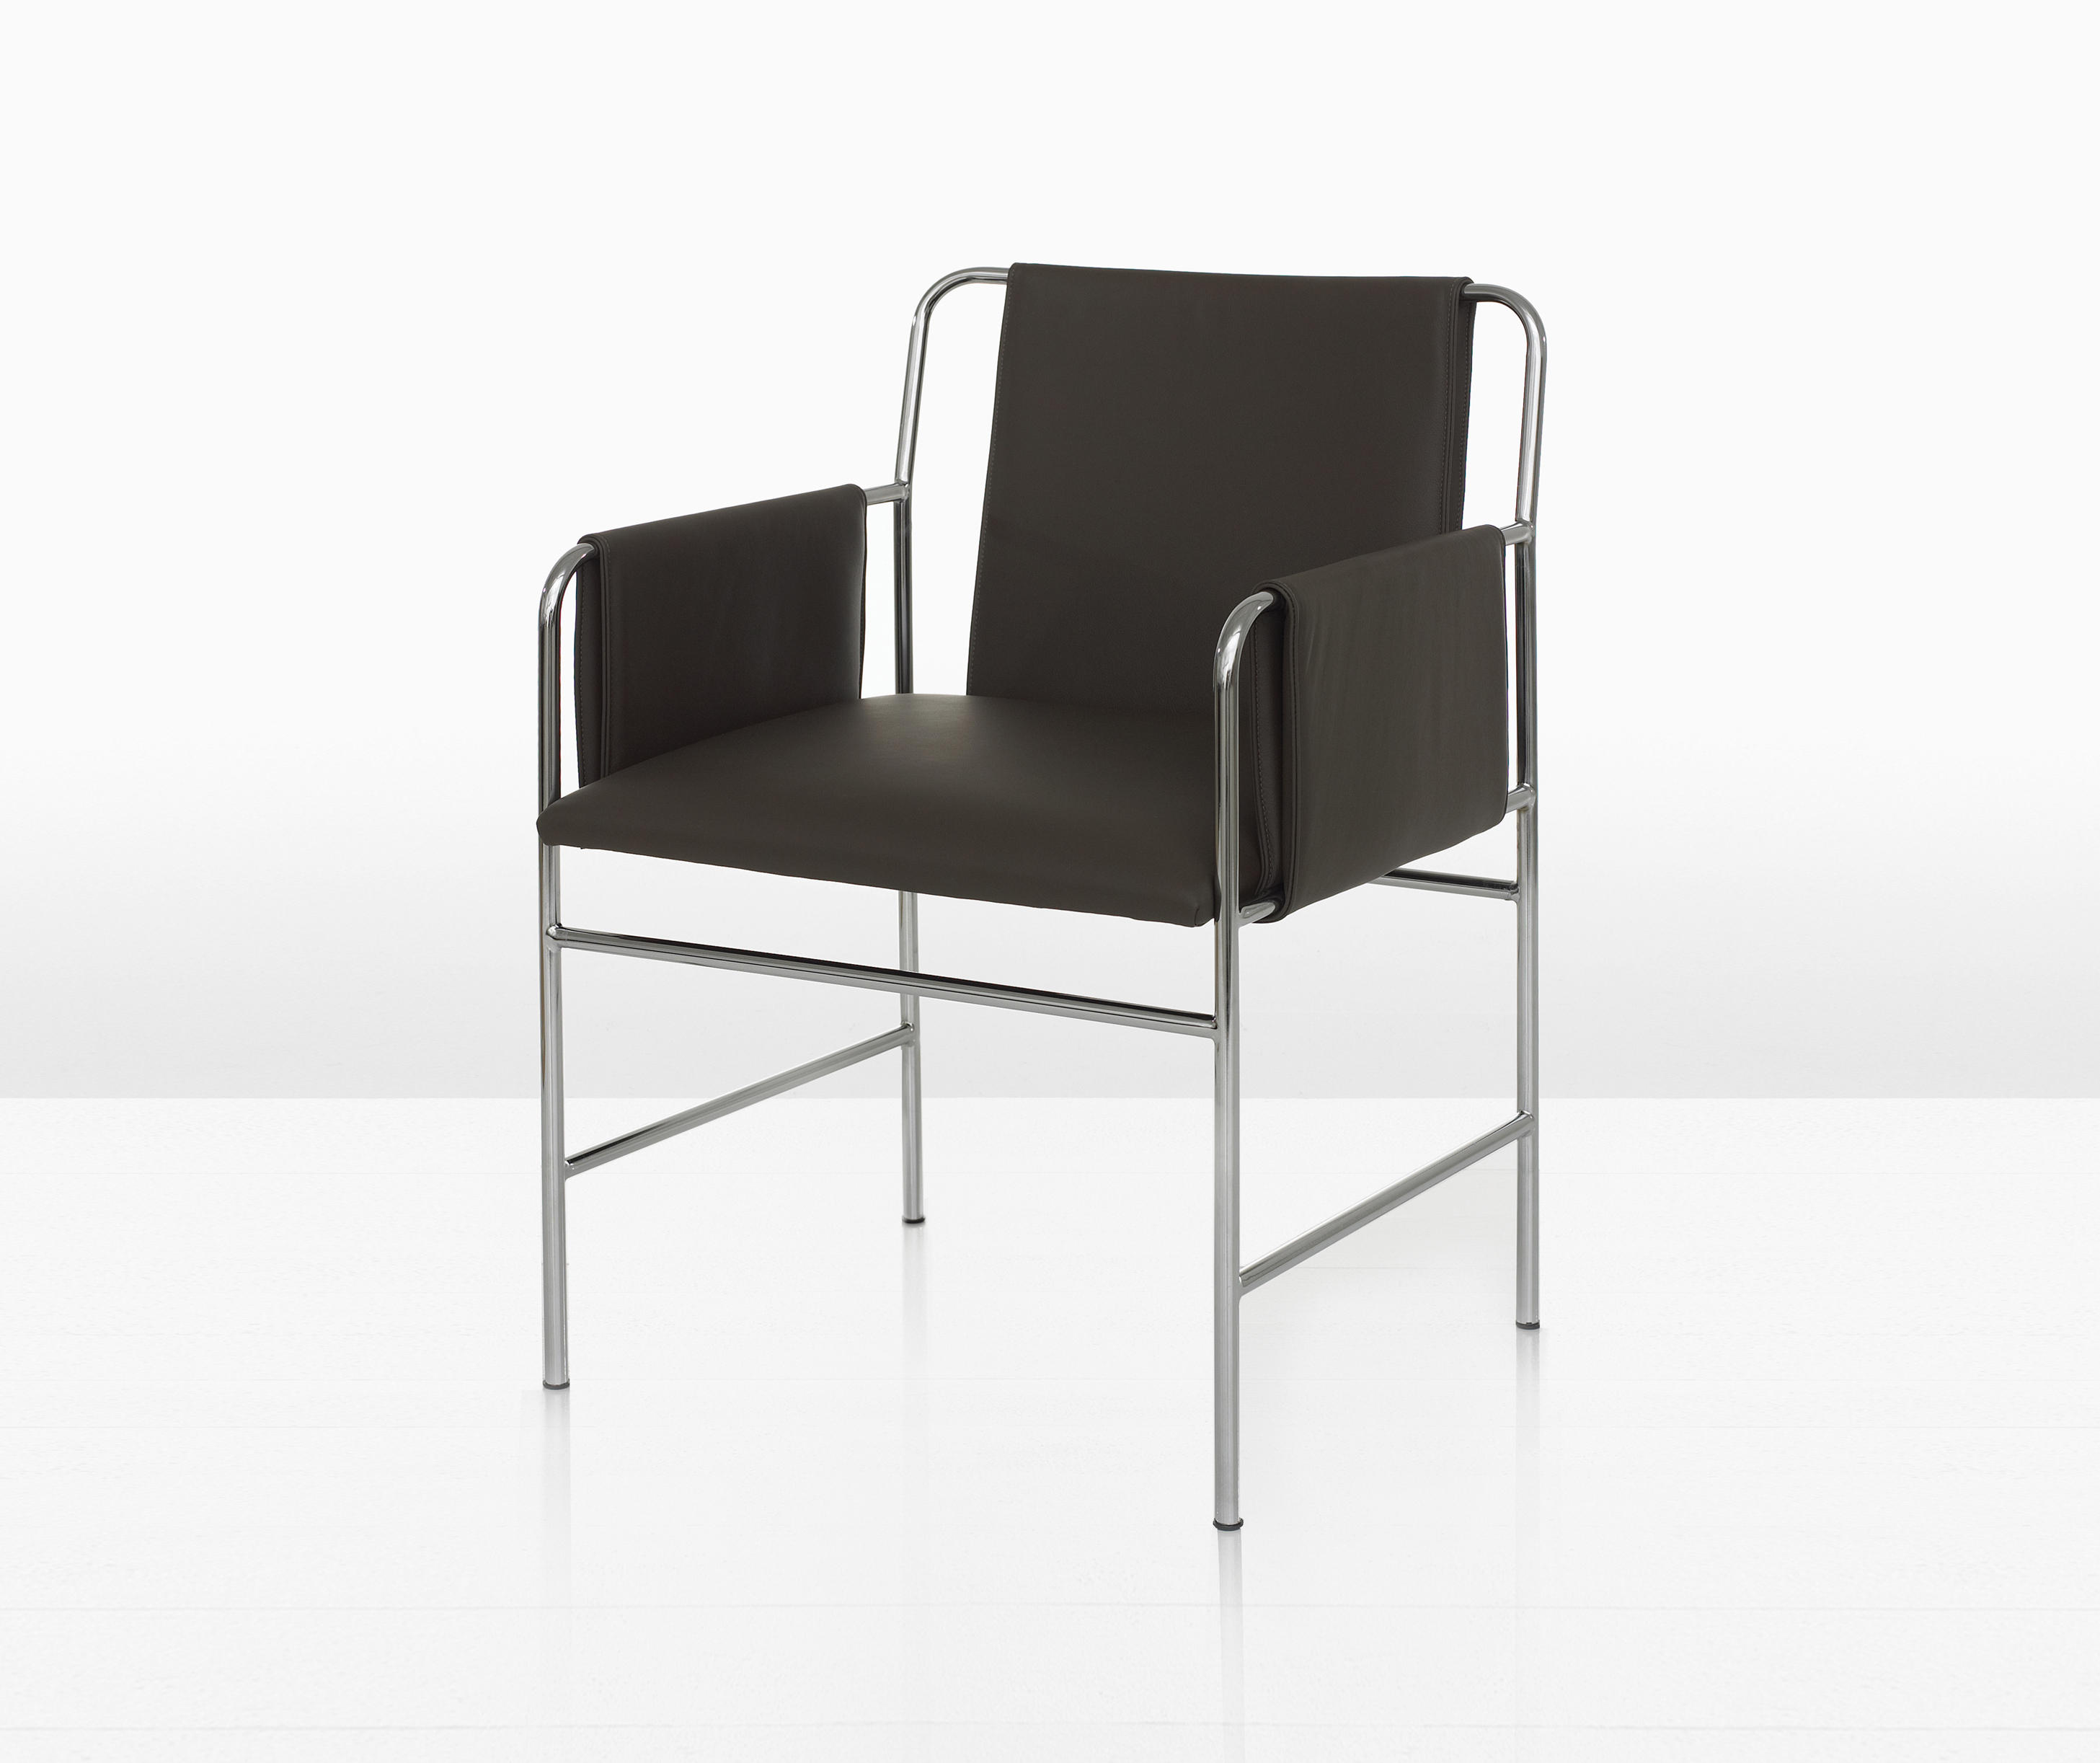 Envelope Chair Chairs From Geiger Architonic